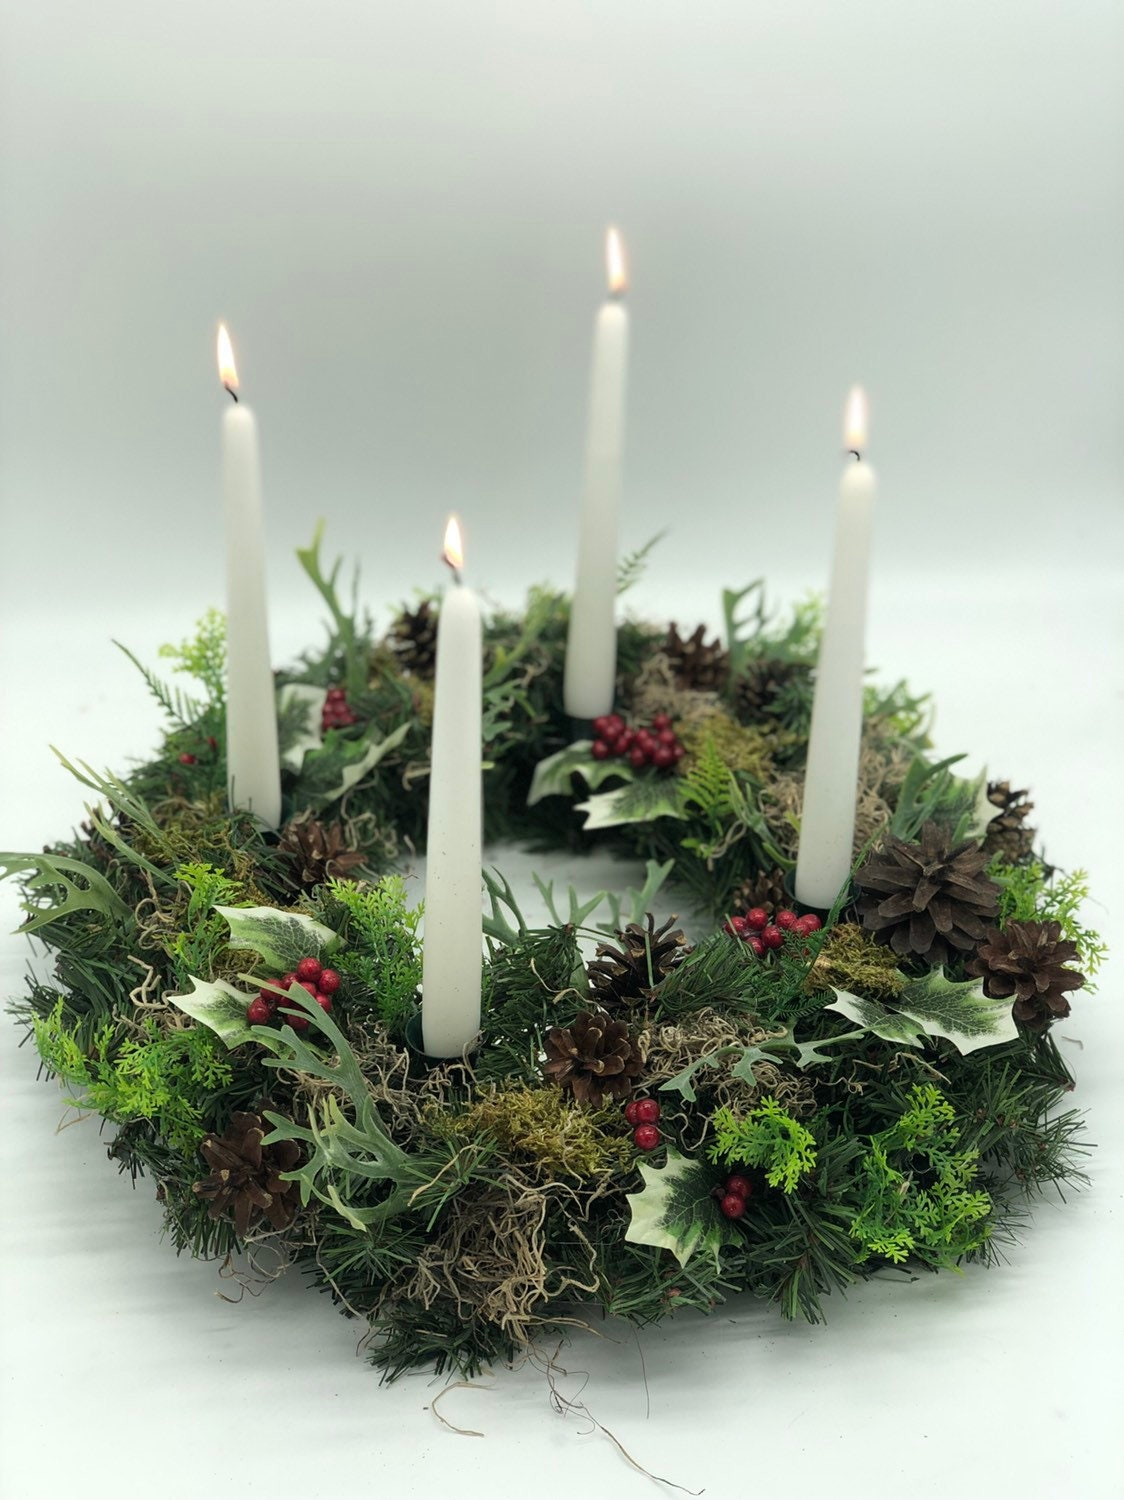 Swell Artificial Christmas Wreath Advent Wreath Table Wreath Home Interior And Landscaping Ologienasavecom